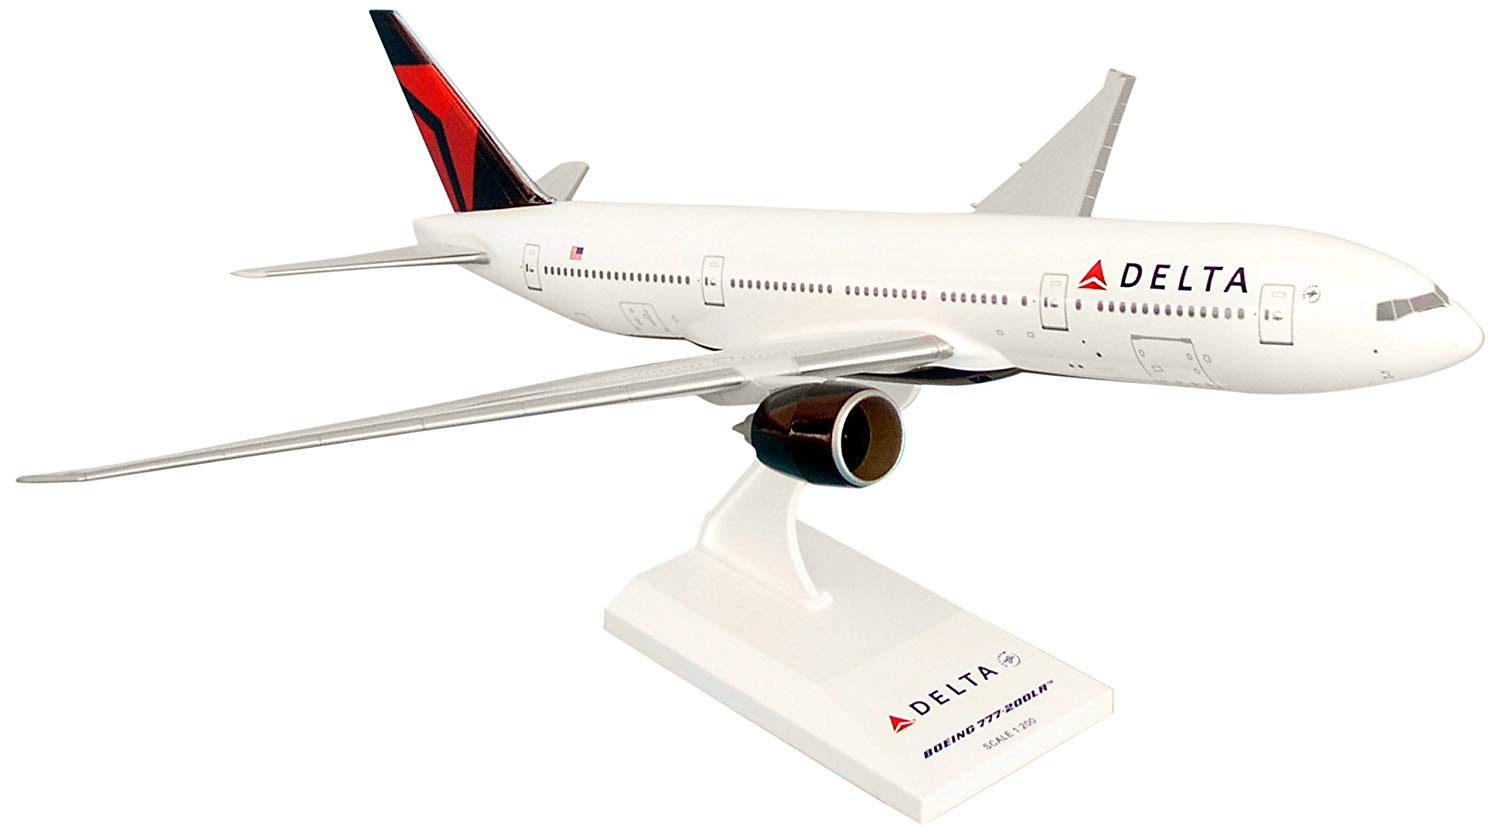 Details about Daron Skymarks Delta 777-200 1/200 2007 Livery Model Aircraft